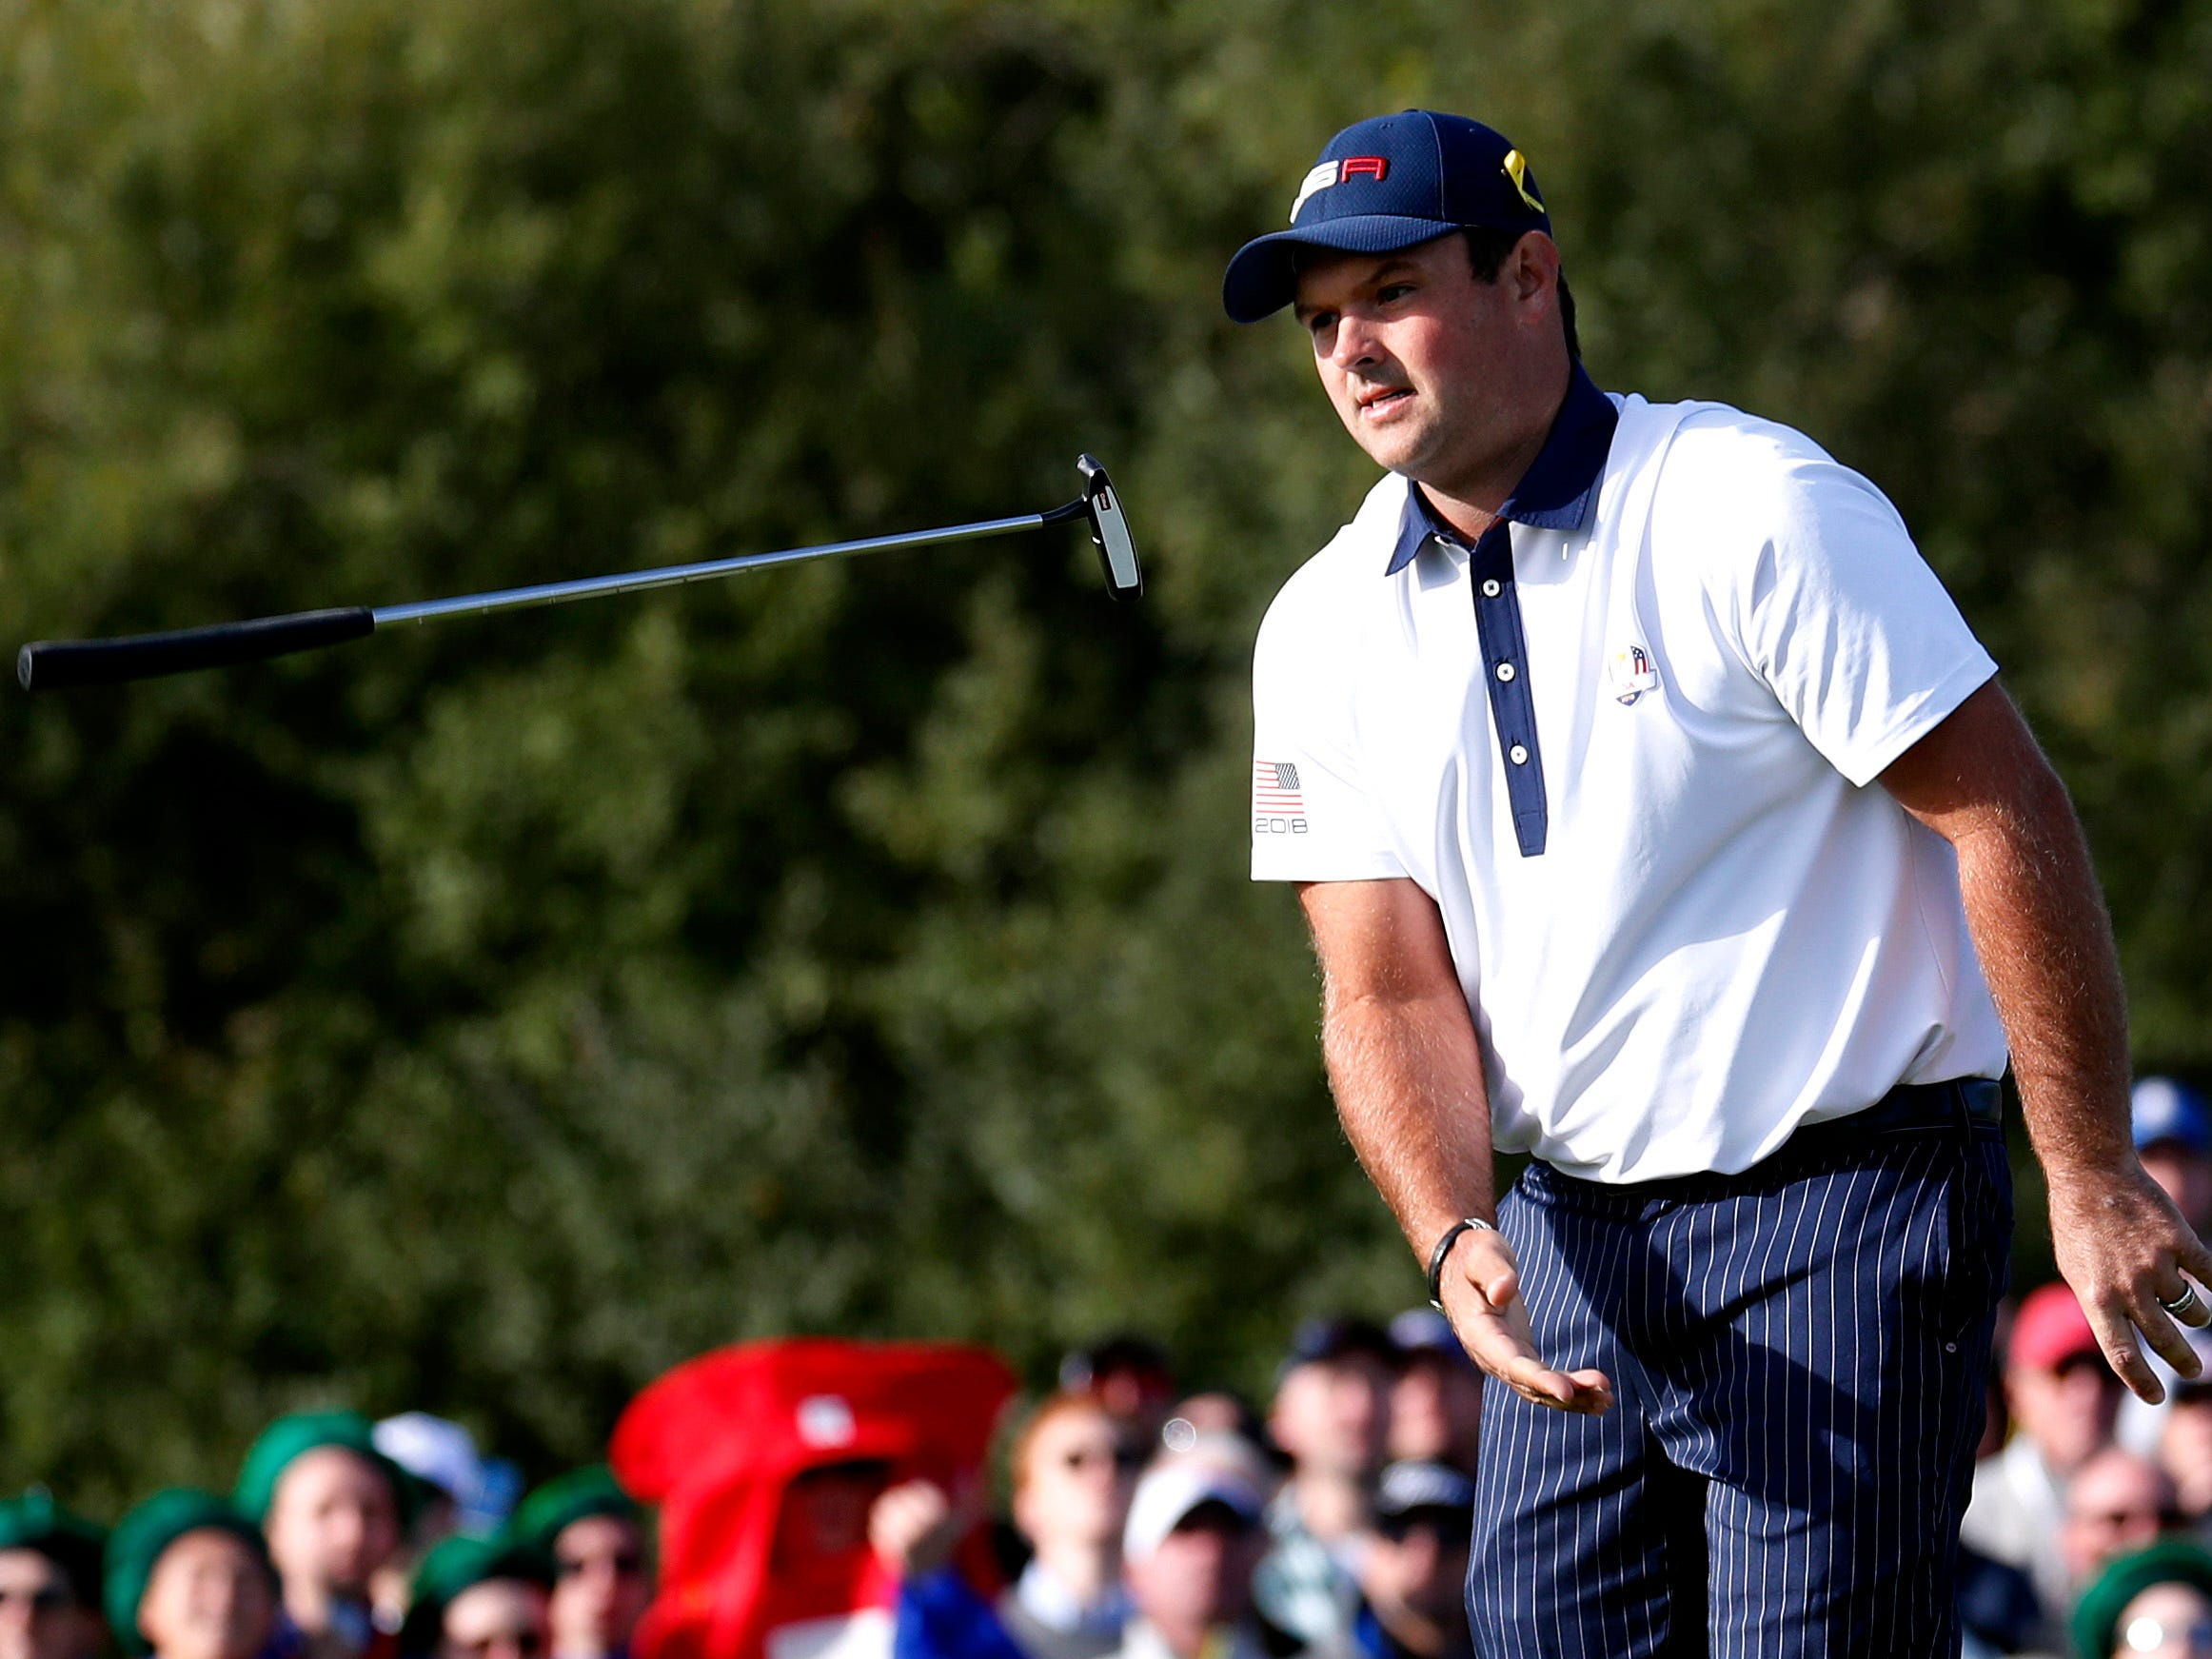 But it wasn't to be for Reed, who was paired with Tiger Woods. They lost Saturday morning to Tommy Fleetwood and Francesco Molinari.